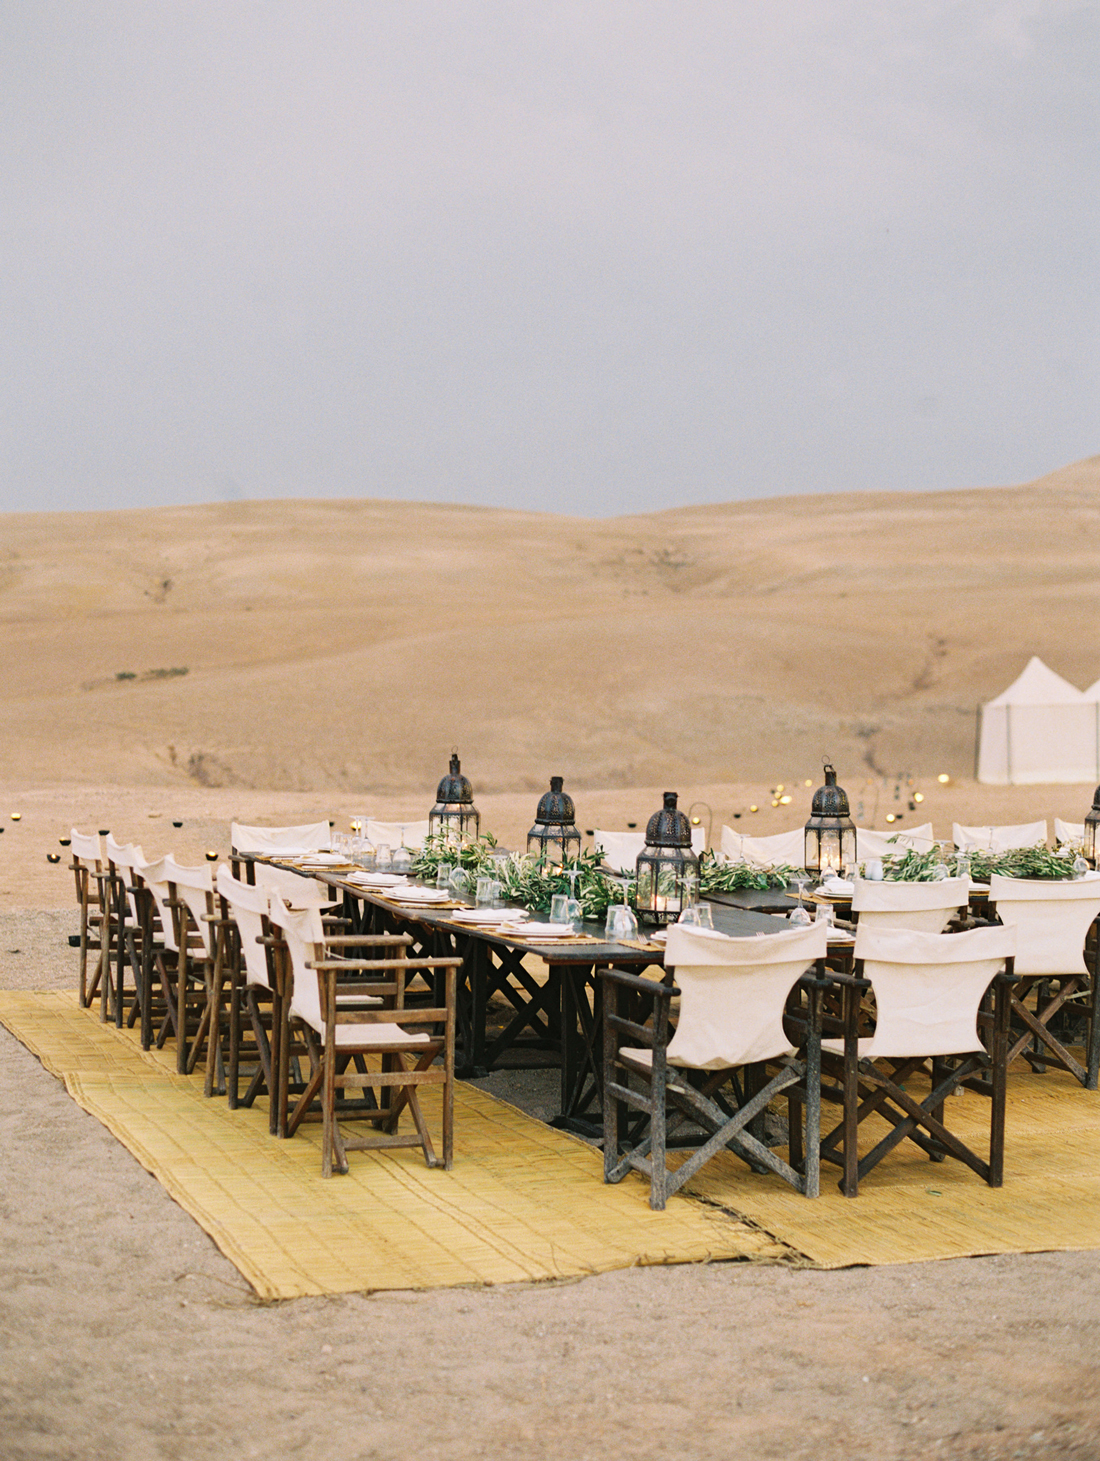 safari style chairs, rugs, and tables with candle and lantern accents